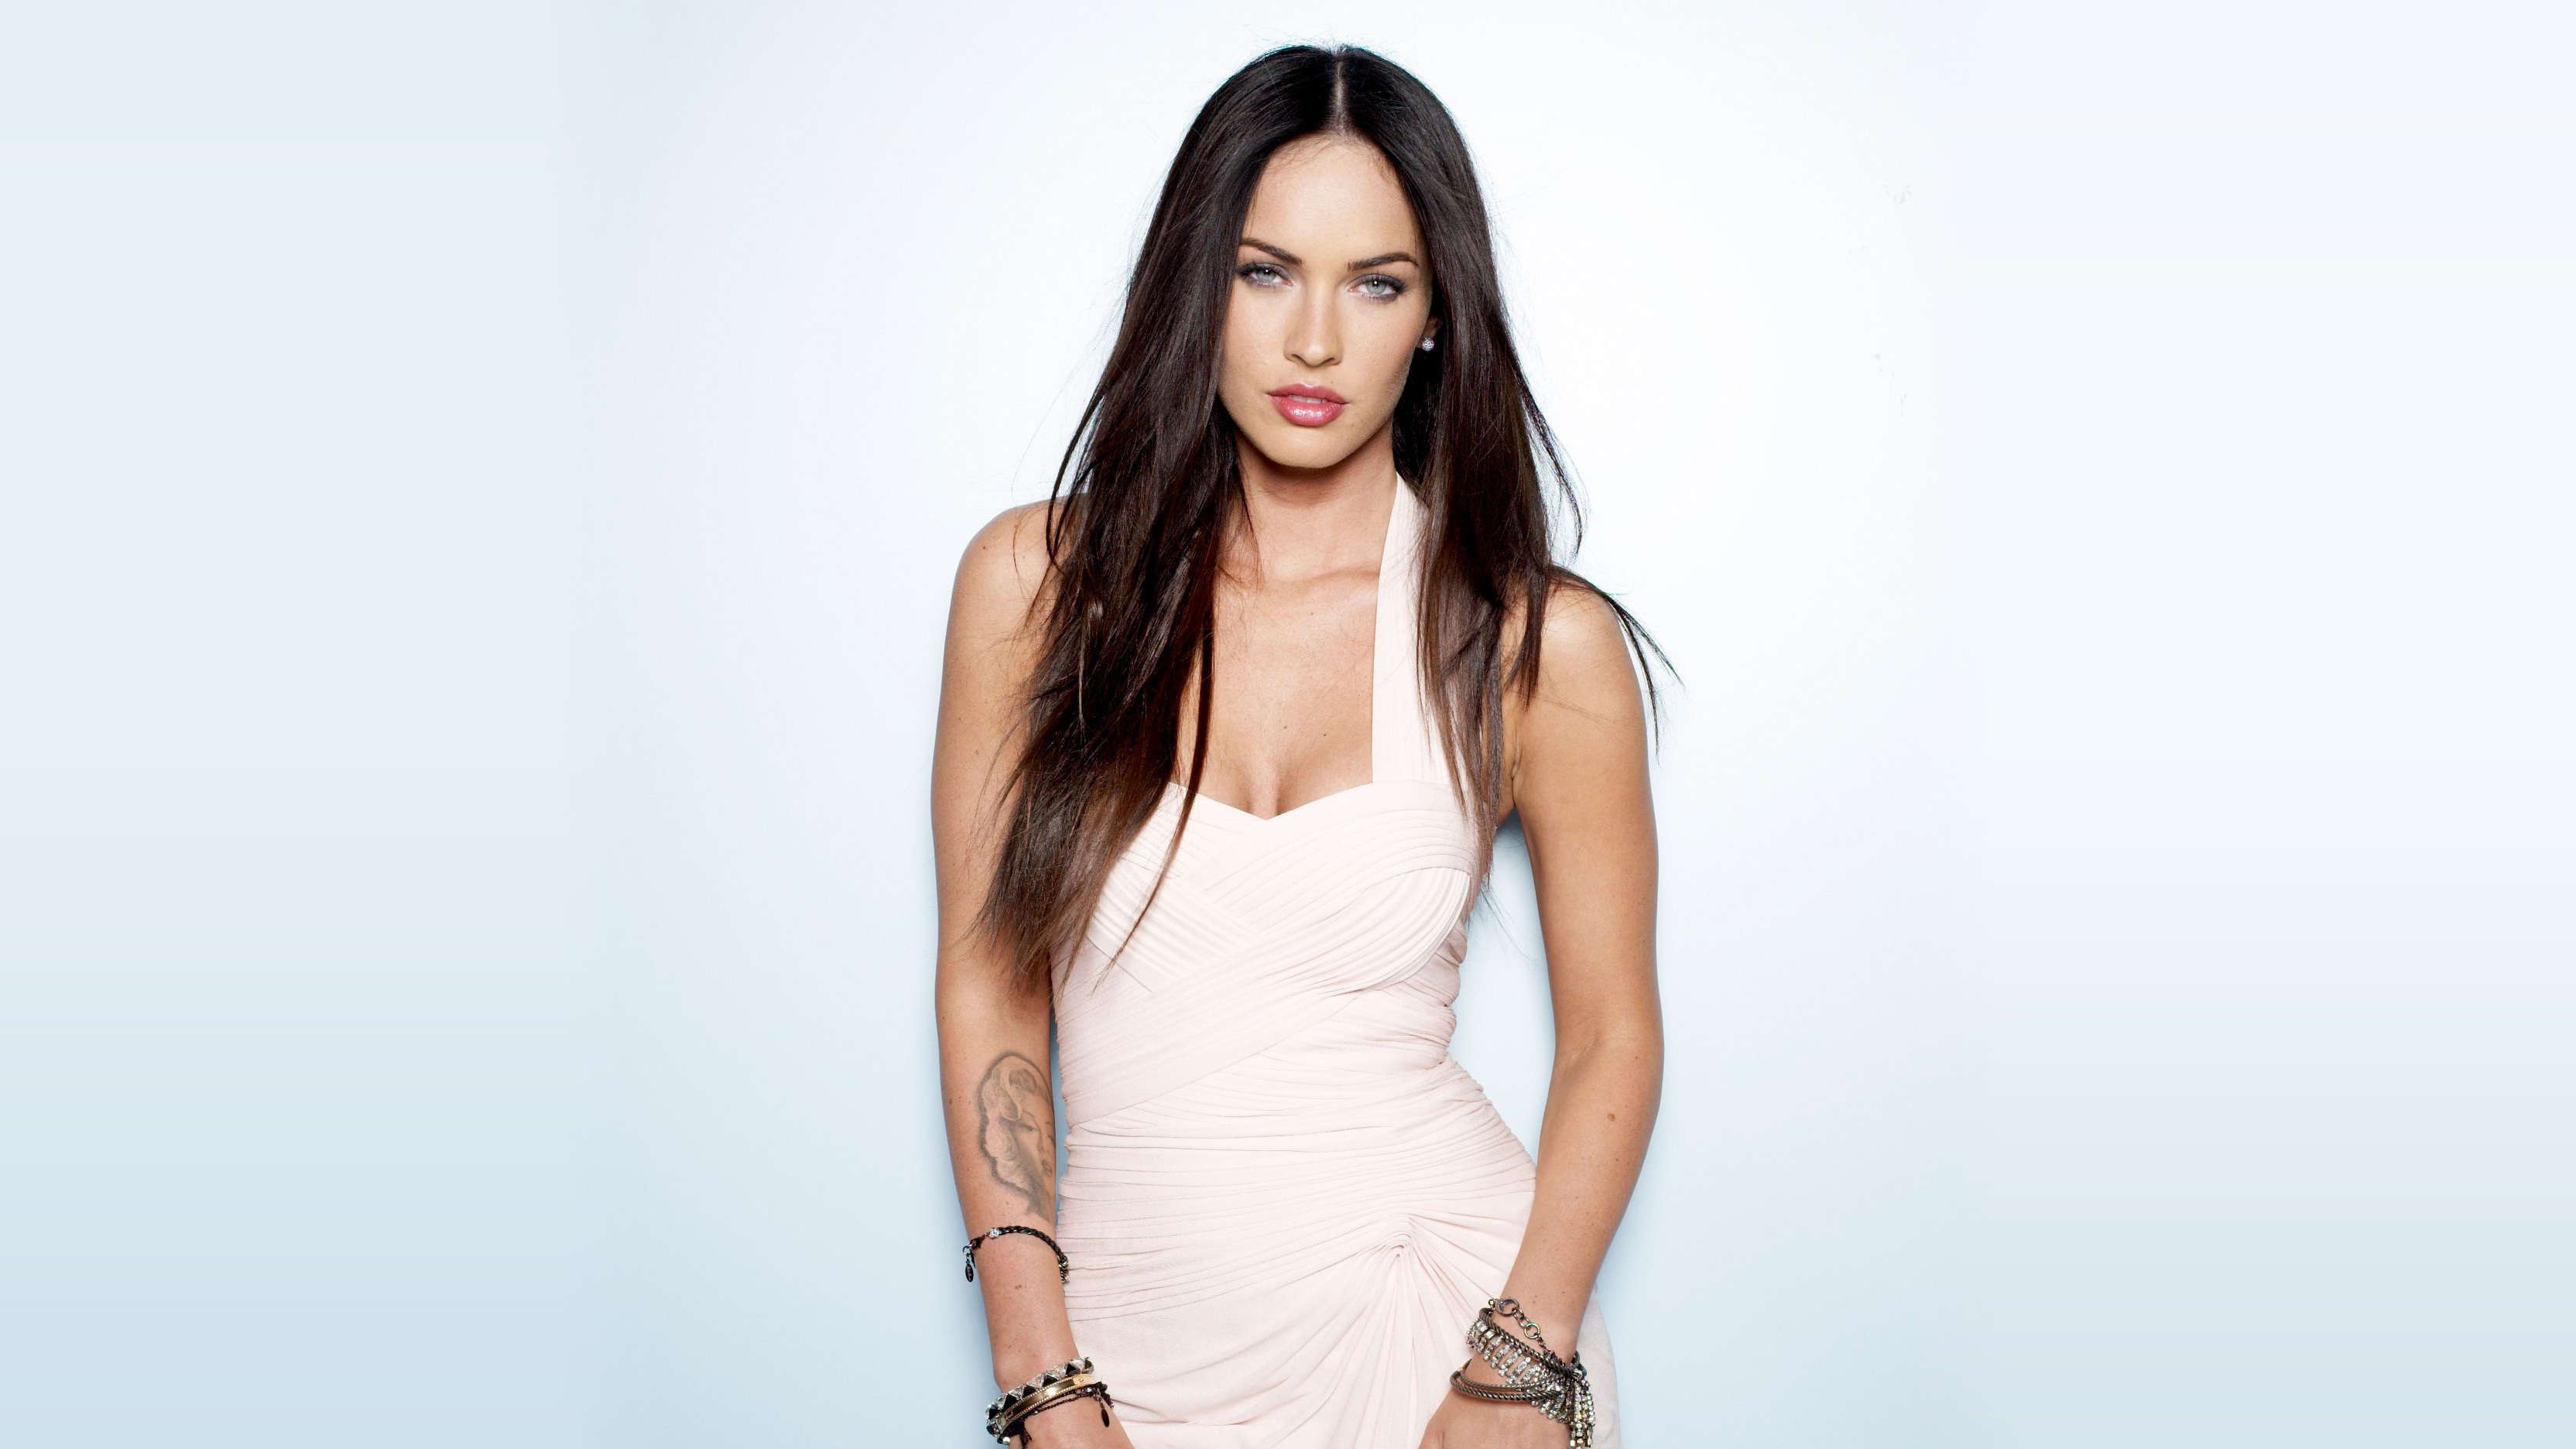 Megan Fox Wallpapers Images Photos Pictures Backgrounds Megan Fox